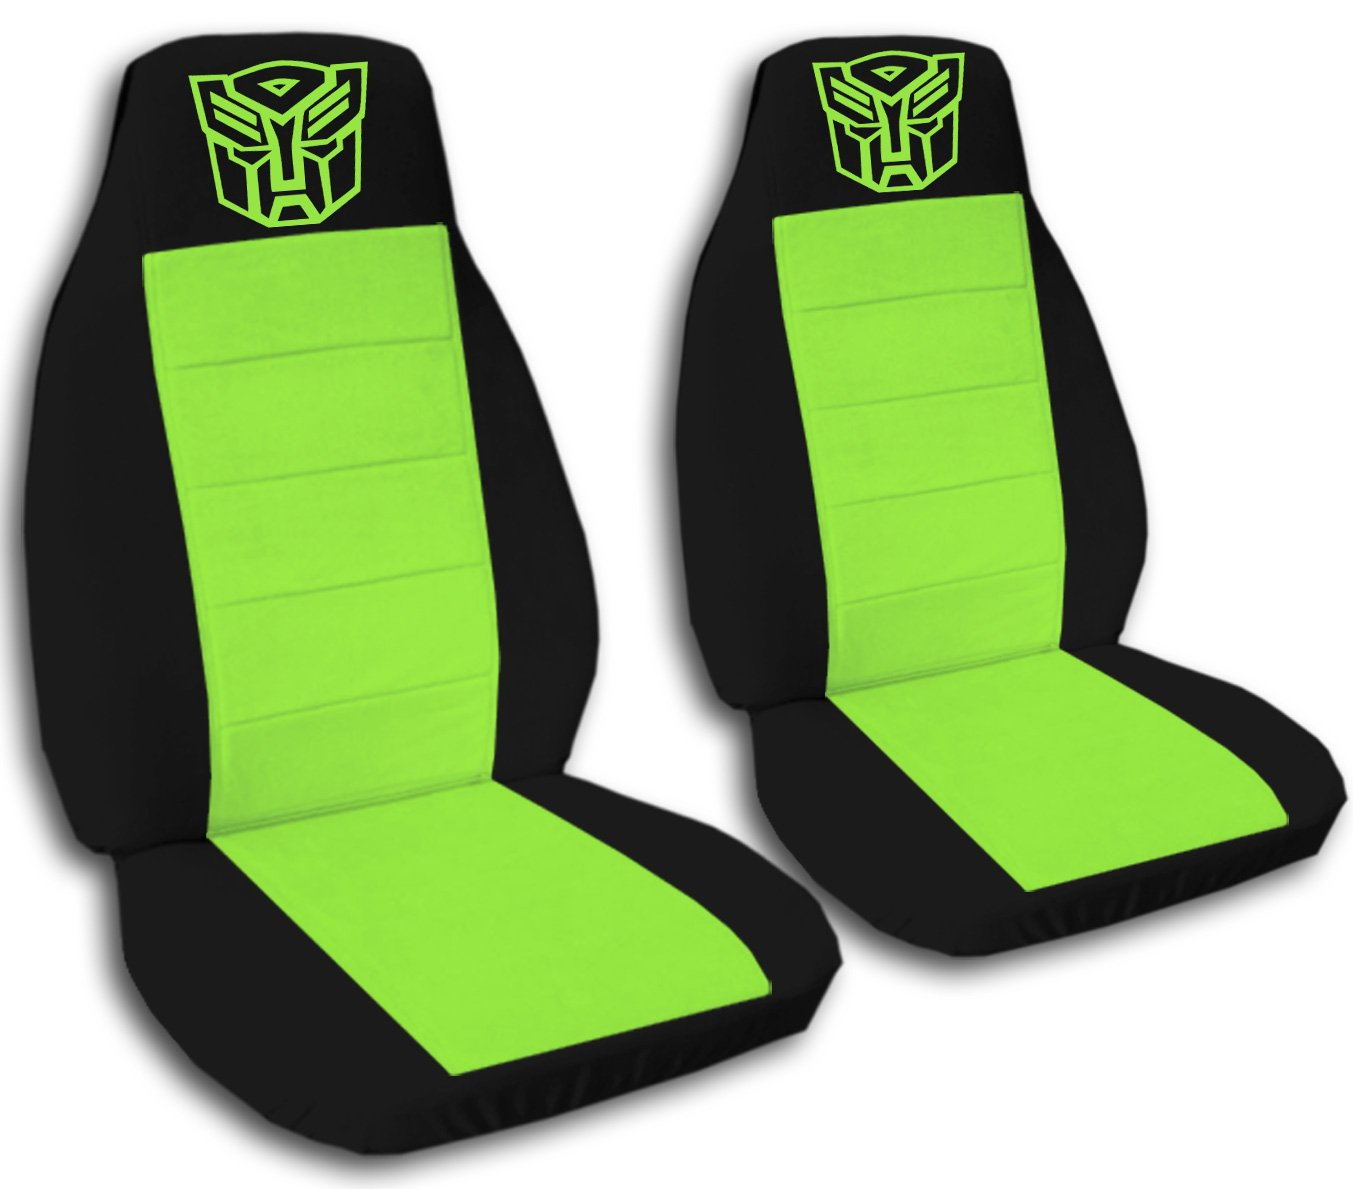 2 Black and Lime Green Robot seat covers for a 2005 to 2010 Jeep Grand Cherokee. plush toys simulation dog